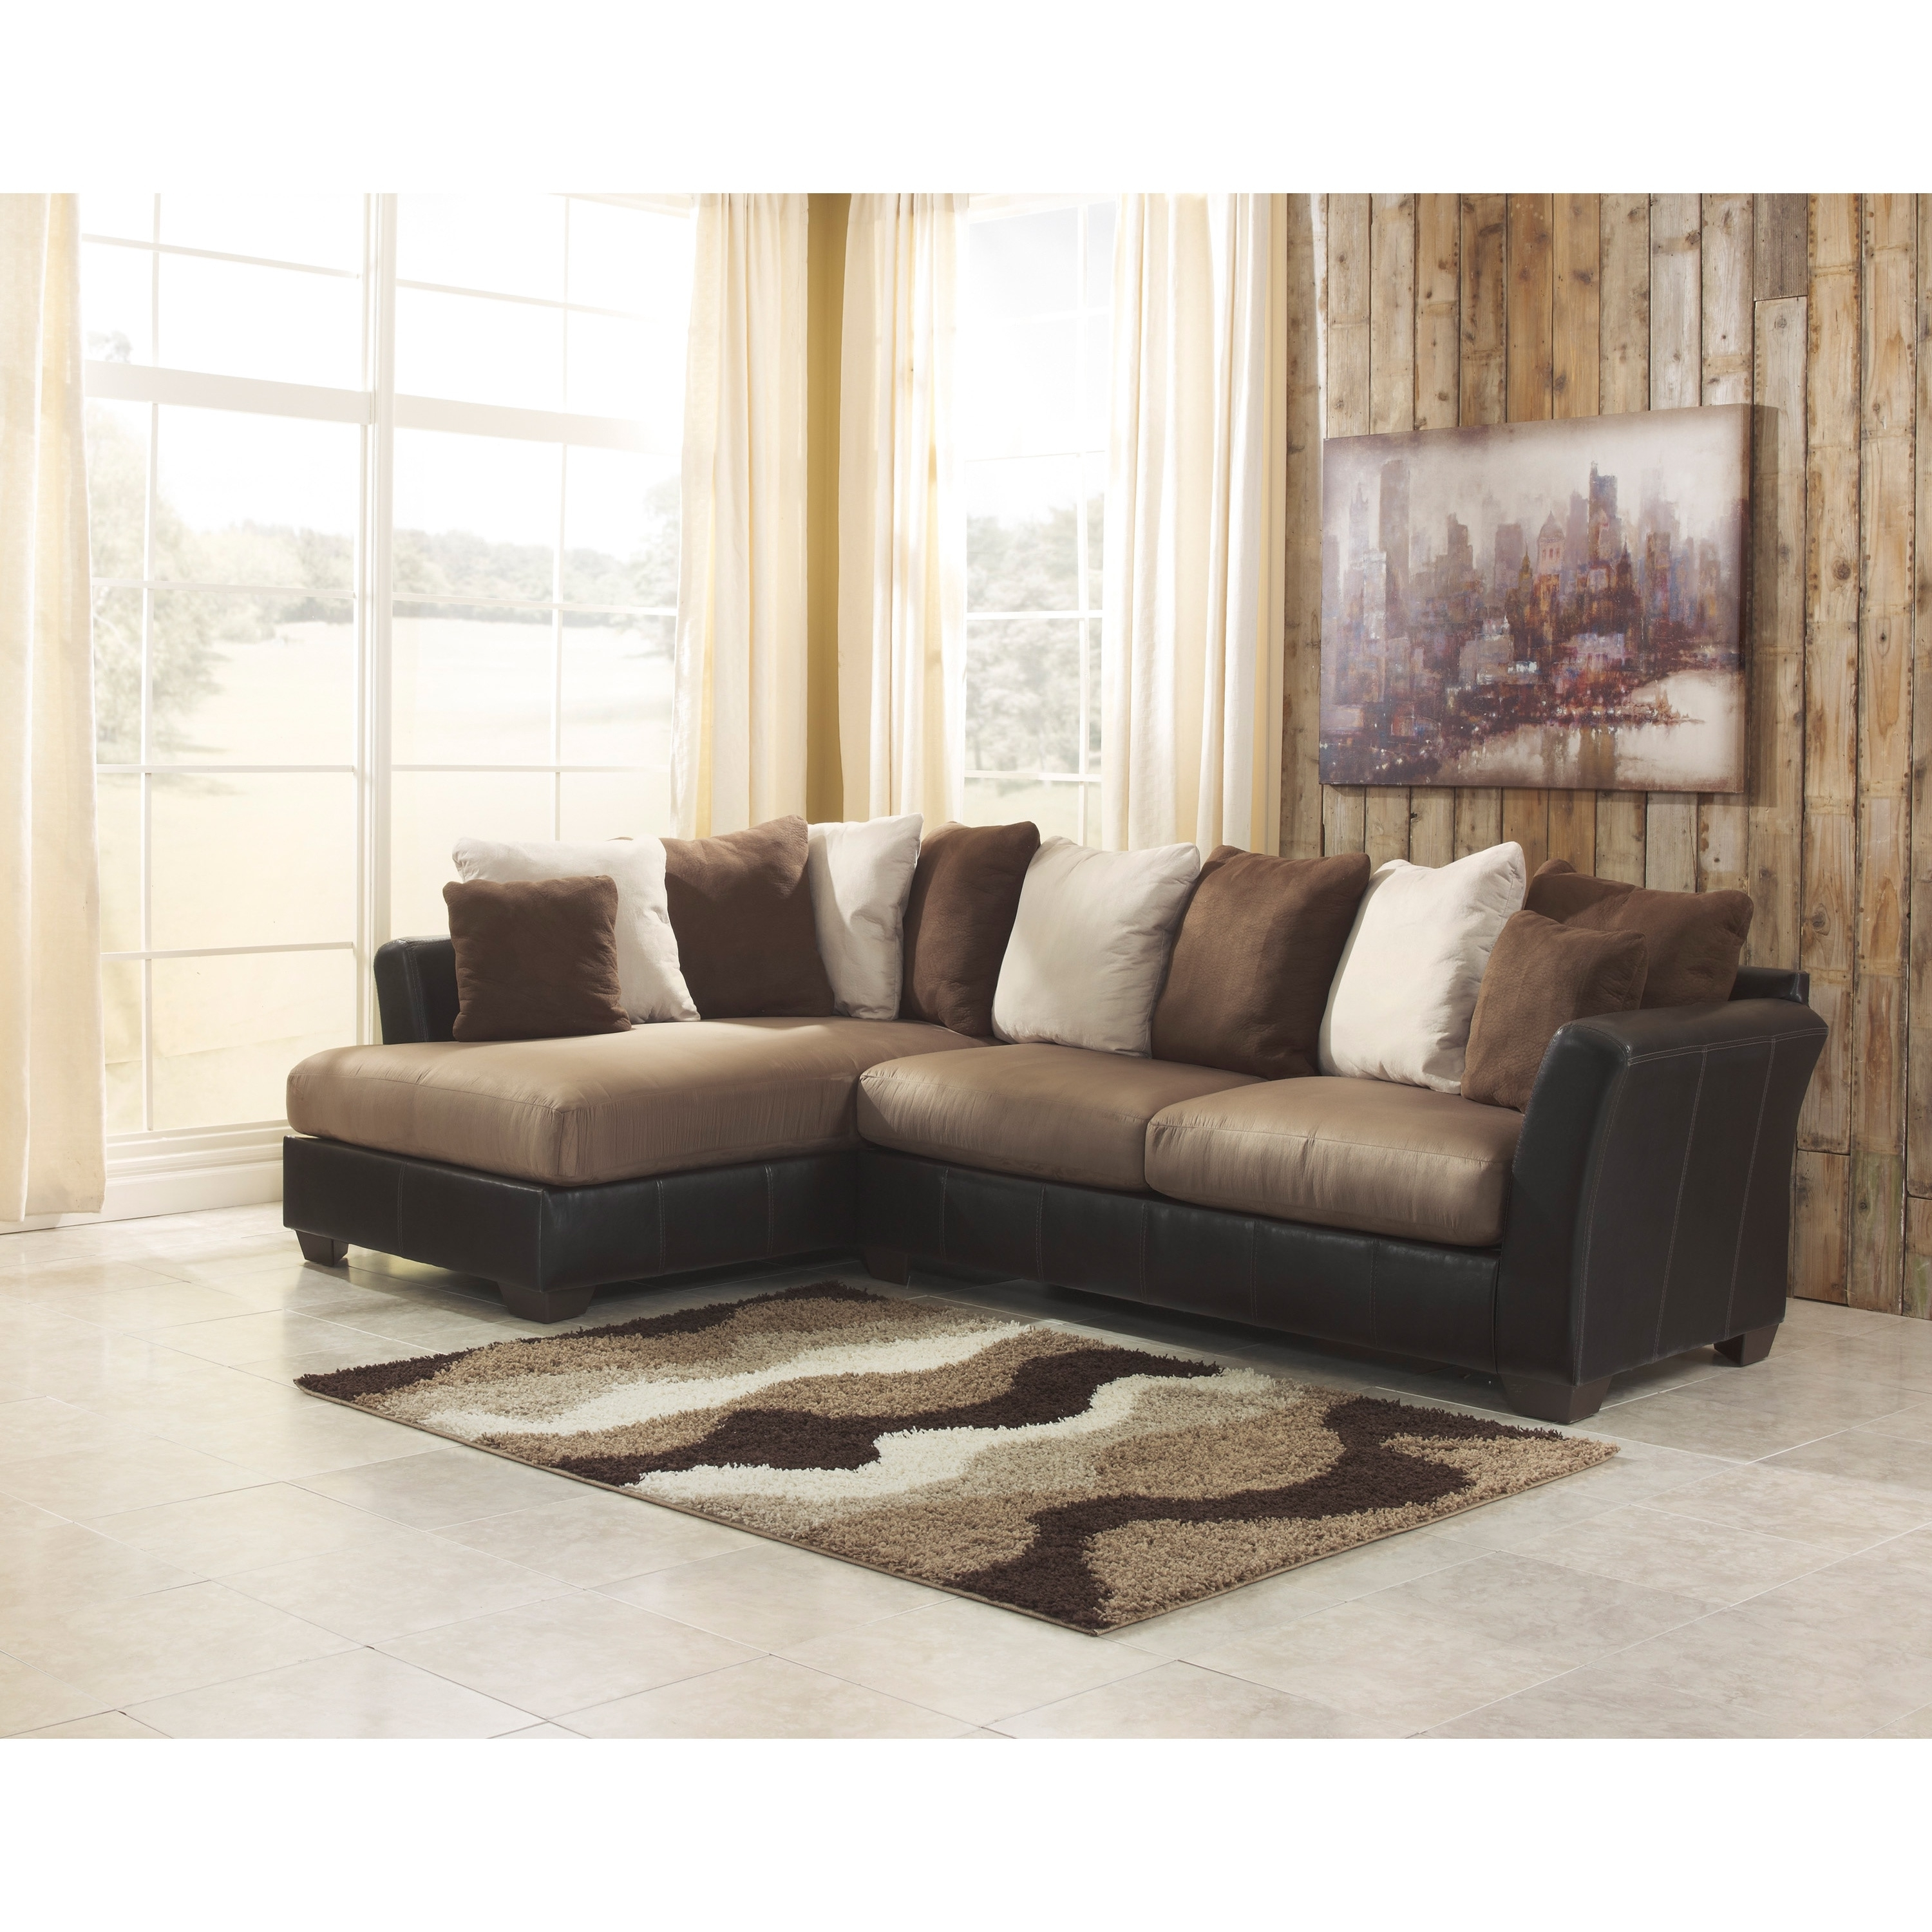 Signature Designashley Masoli 2 Piece Mocha Corner Chaise And With Regard To Current 2 Piece Sectionals With Chaise (View 13 of 15)